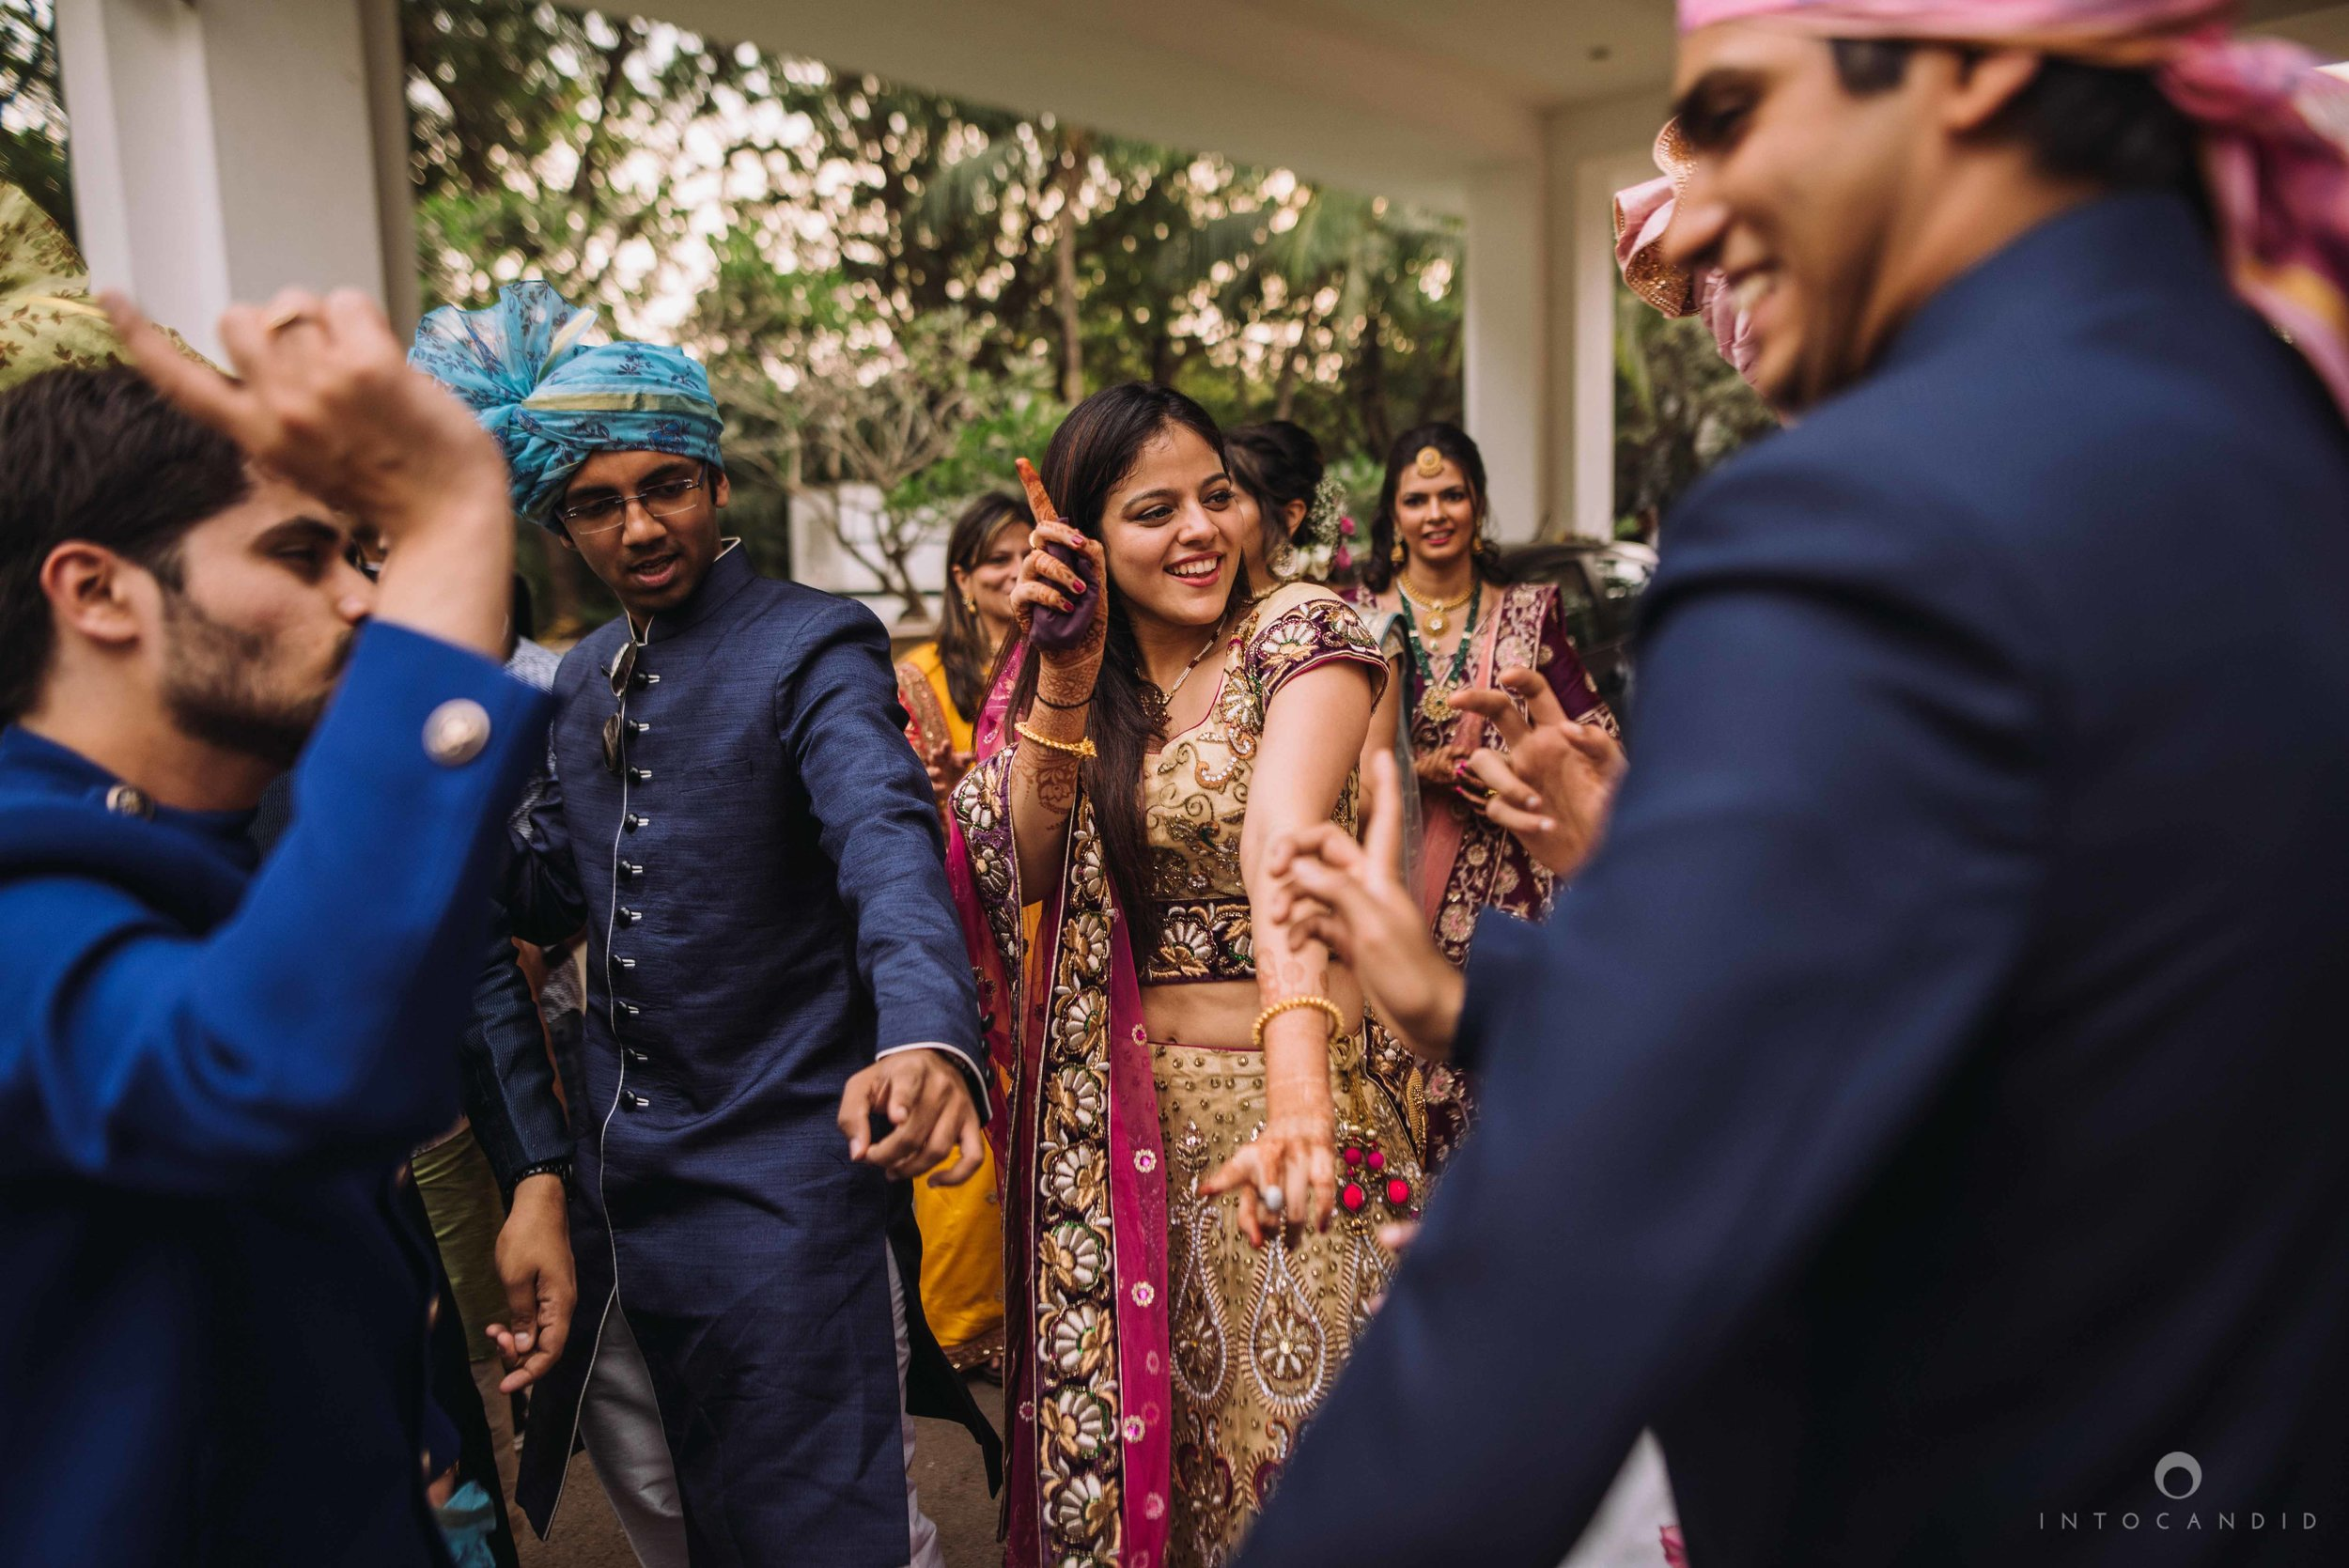 Candid_wedding_photographer_in_mumbai_31.JPG